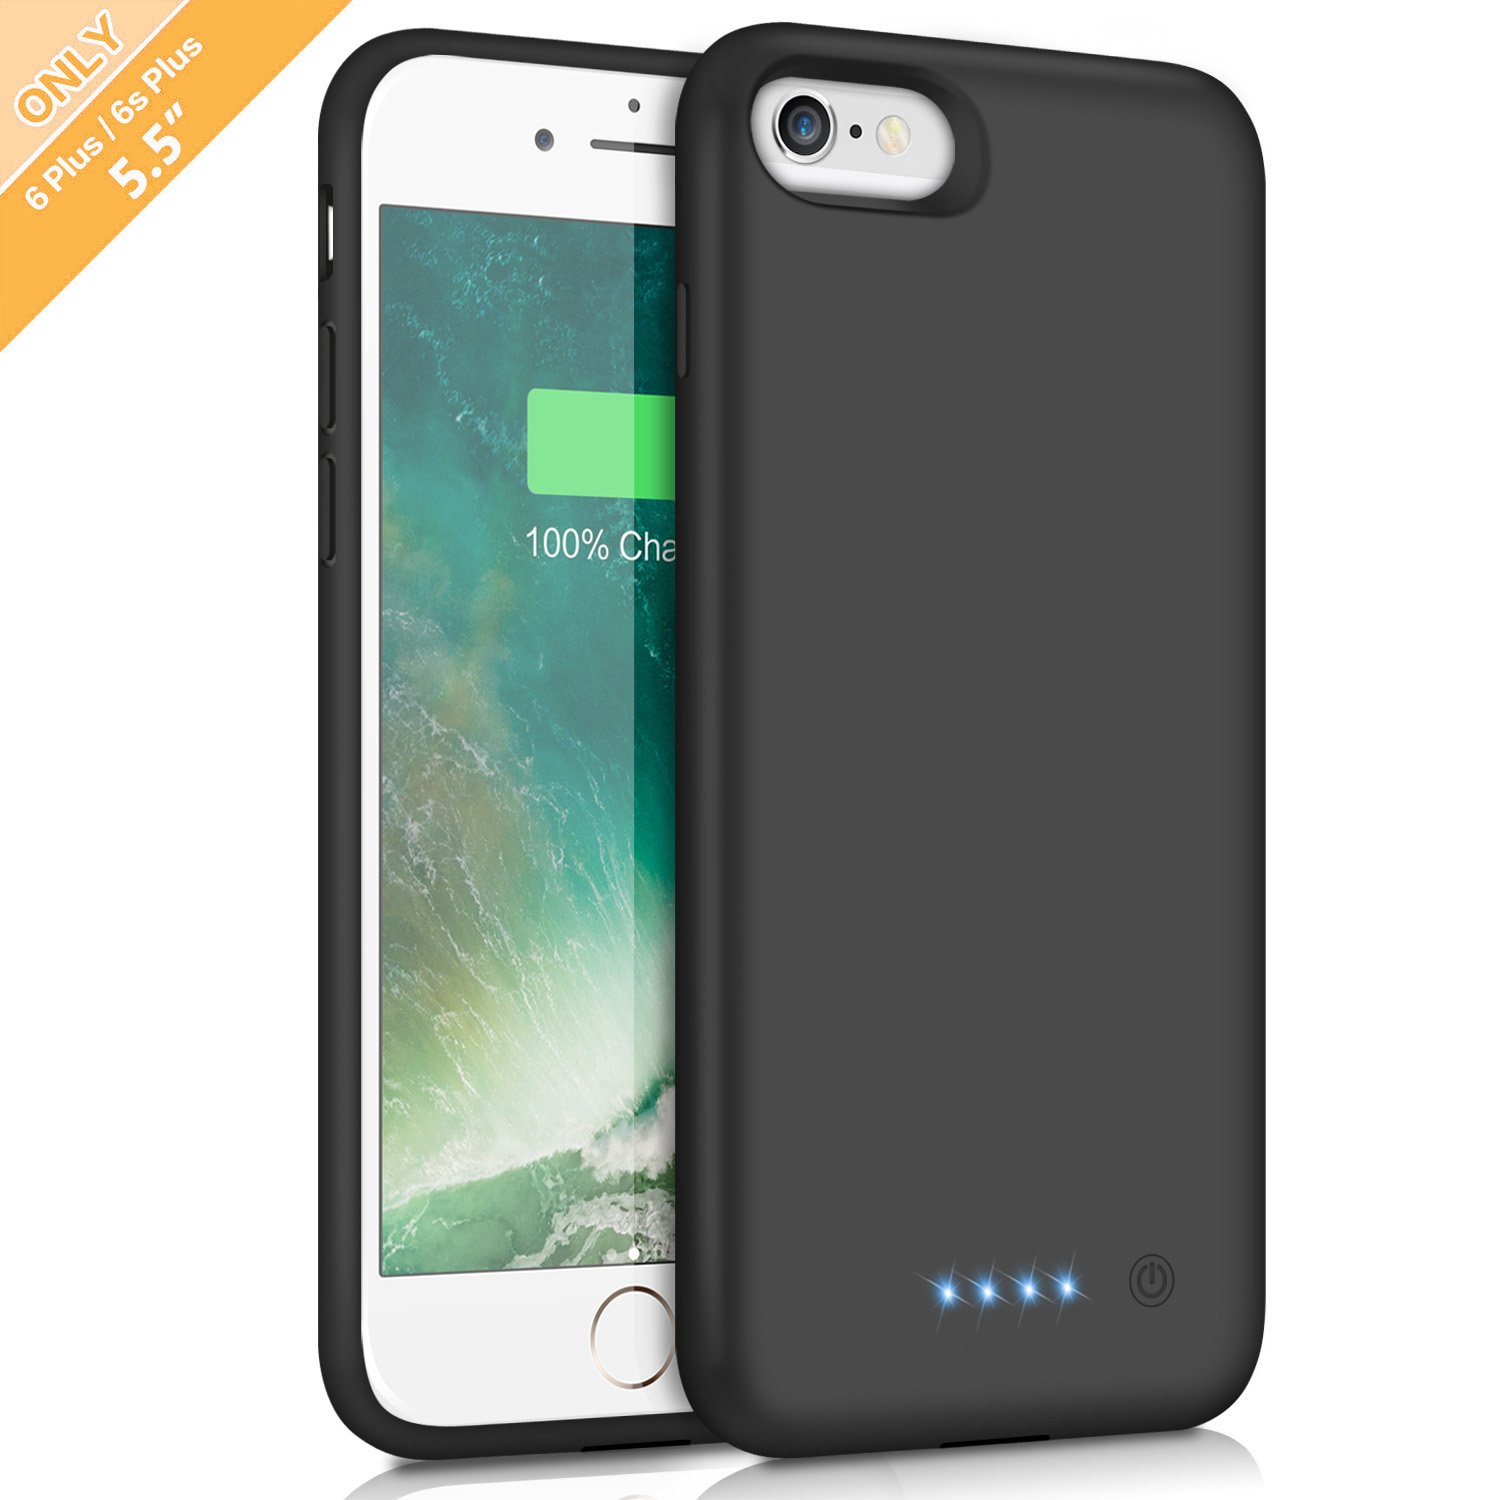 iPhone 6s Plus/6 Plus Battery Case, Feob 8500mAh Rechargeable Charger Case Extended Battery Pack for iPhone 6Plus & 6s Plus Charging Case Portable Power Bank (5.5 inch)- Black